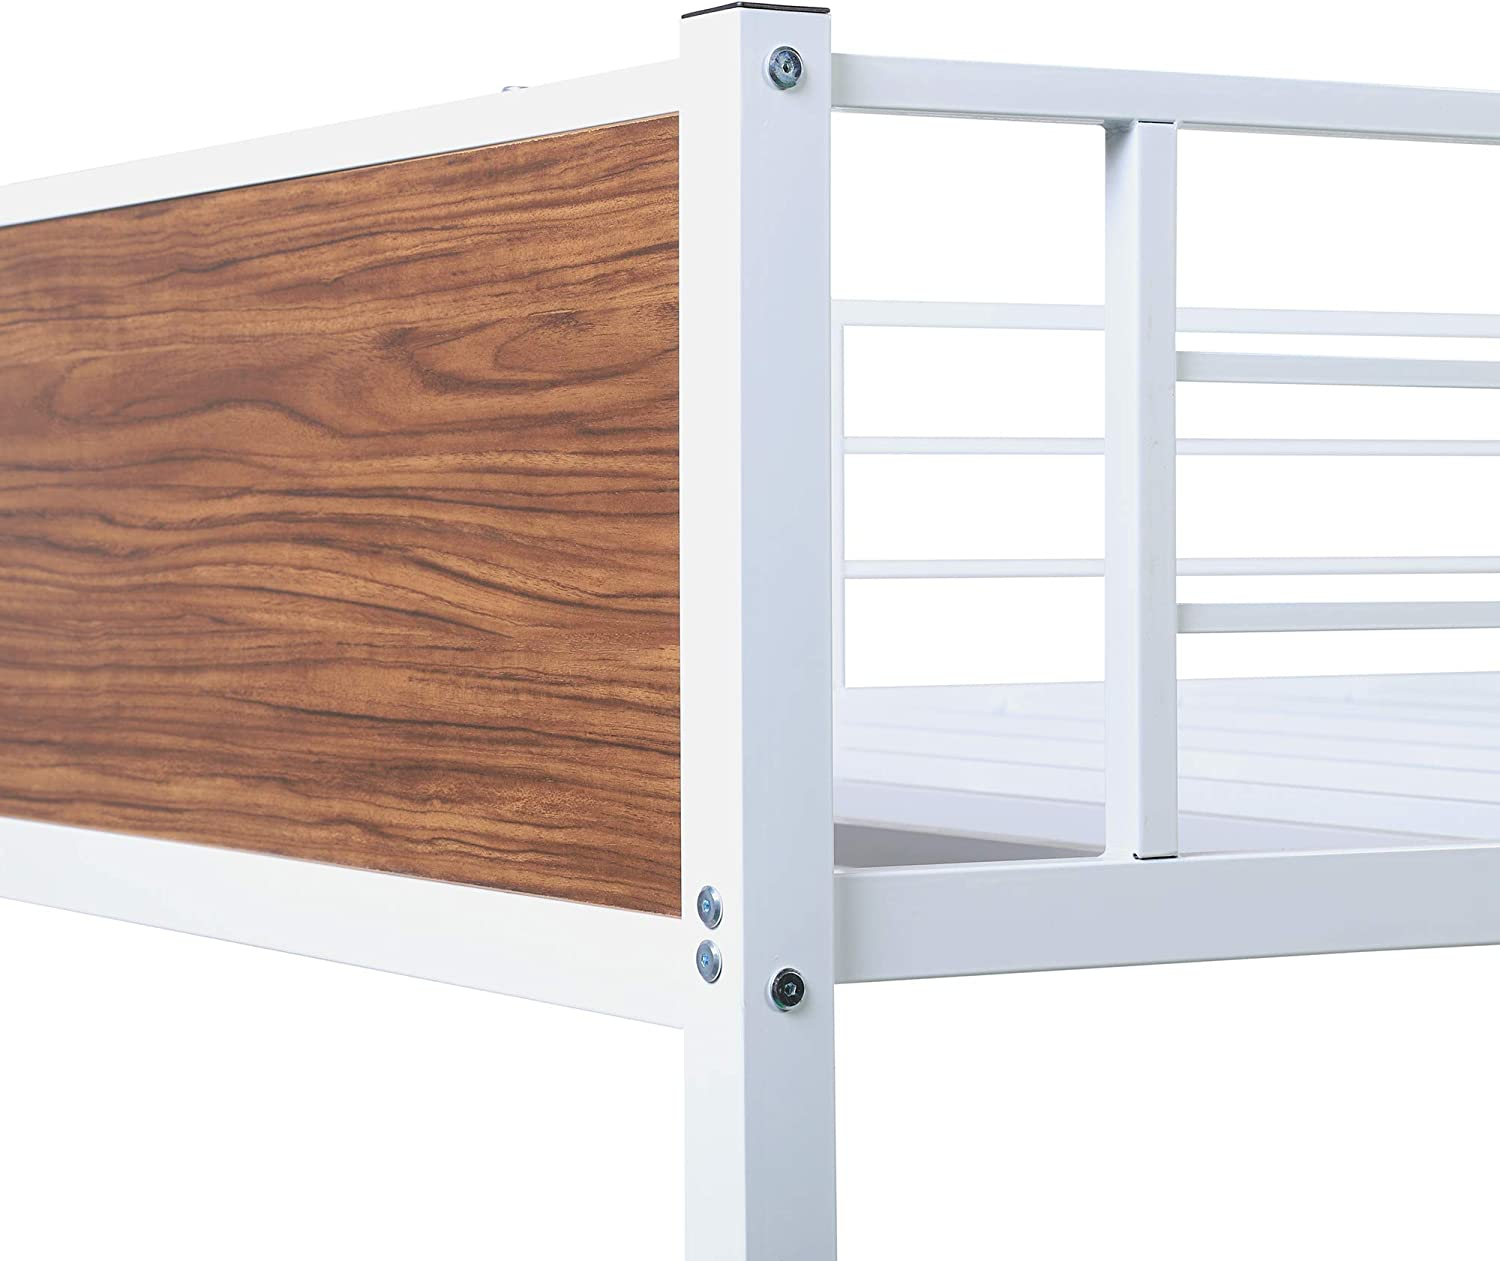 Buy P Purlove Full Over Full Bunk Bed Metal Bunk Bed Steel Frame Bunk Bed With Full Guardrail Bed Frame With Built In Ladder For Bedroom Dorm Boys Girls Online In Indonesia B08pprltld